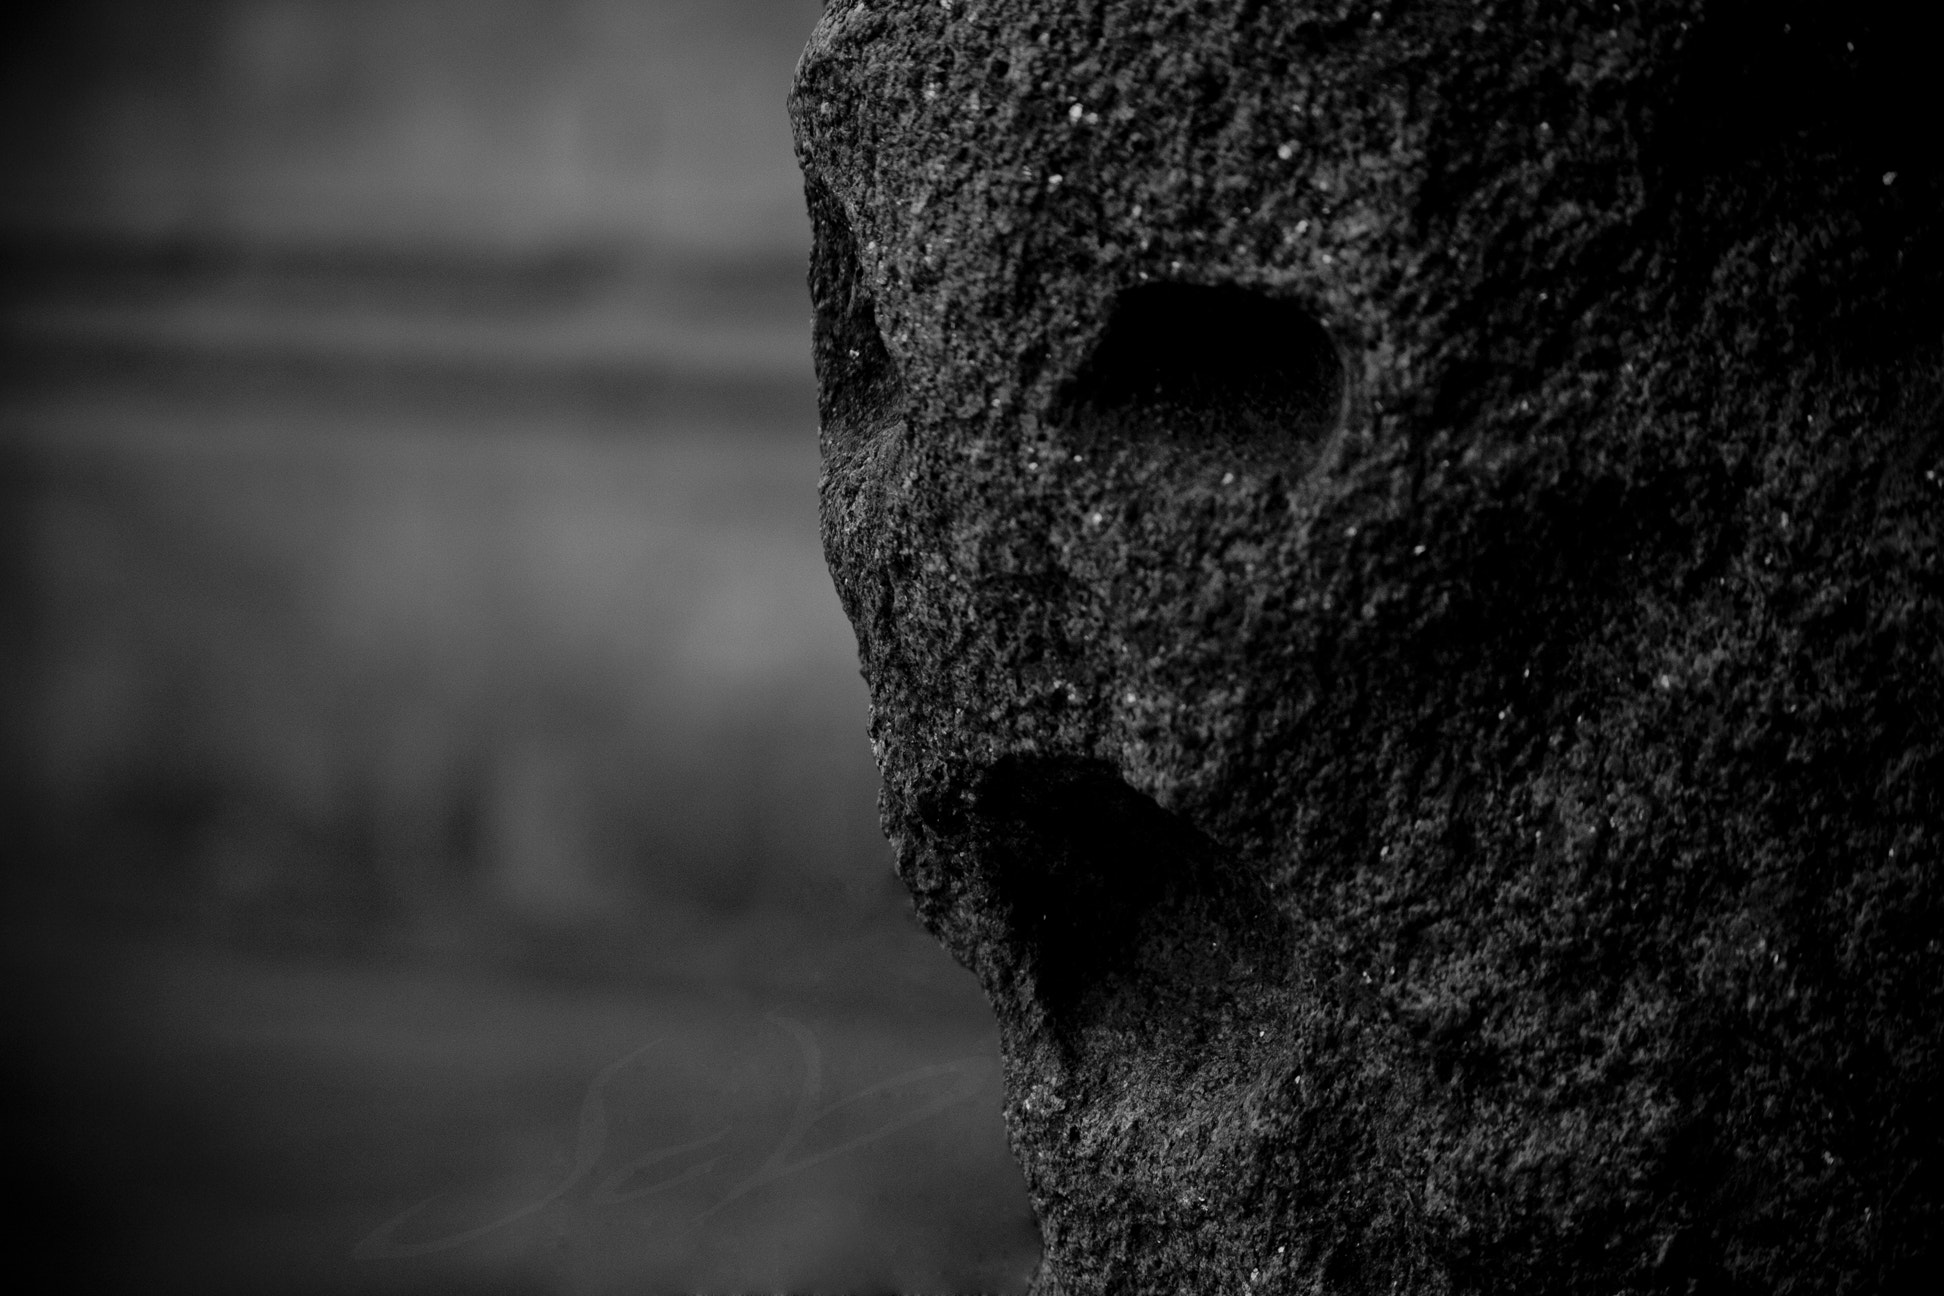 Photograph ~ petrified scream ~ by Jcb formo on 500px